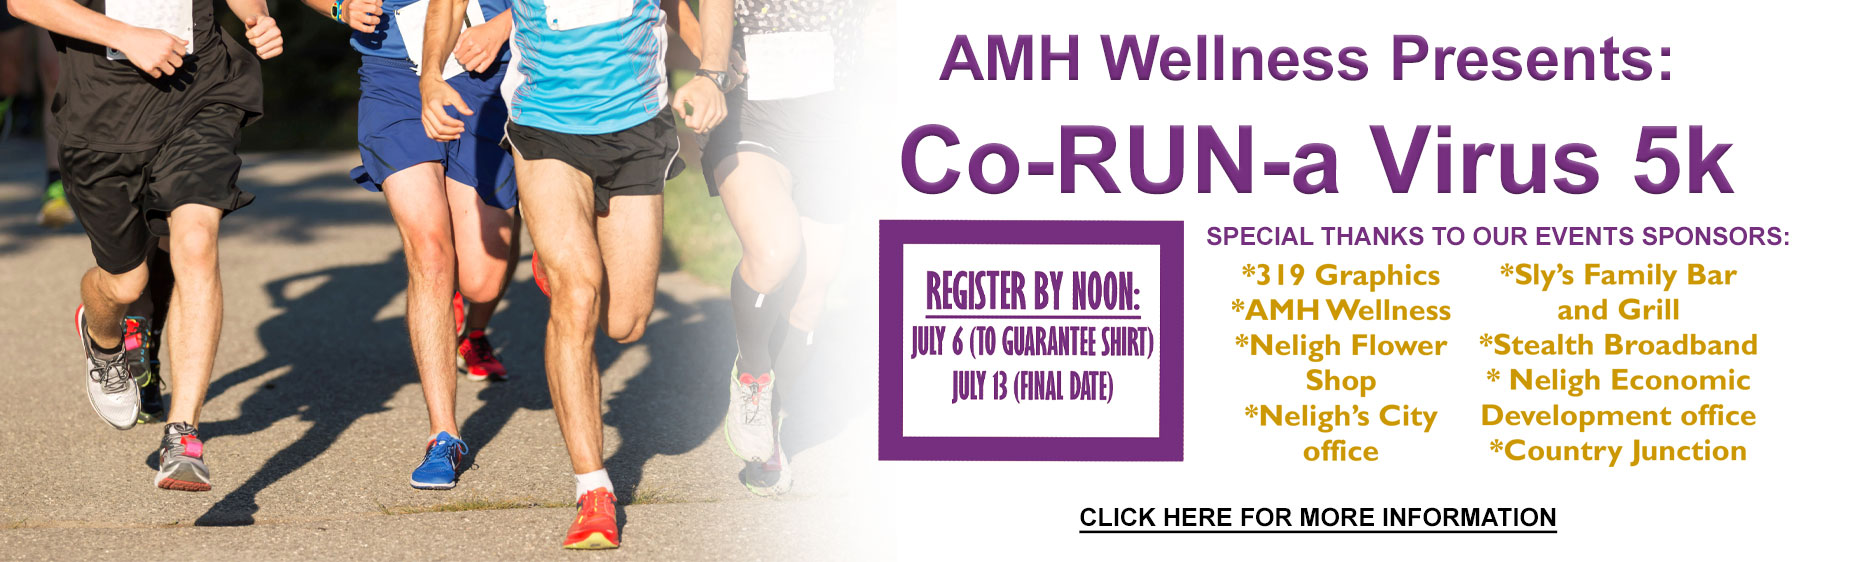 AMH Wellness presents: Co-RUN-a Virus 5k  Register by noon: July 6th to guarantee shirt! July 13 (Final Date) Special Thanks to our events sponsors: 319 Graphics  AMH Wellness Neligh Flower Shop Neligh's City Office Slys Chill & Grill Stealth Broadband Neligh Economic Development Office